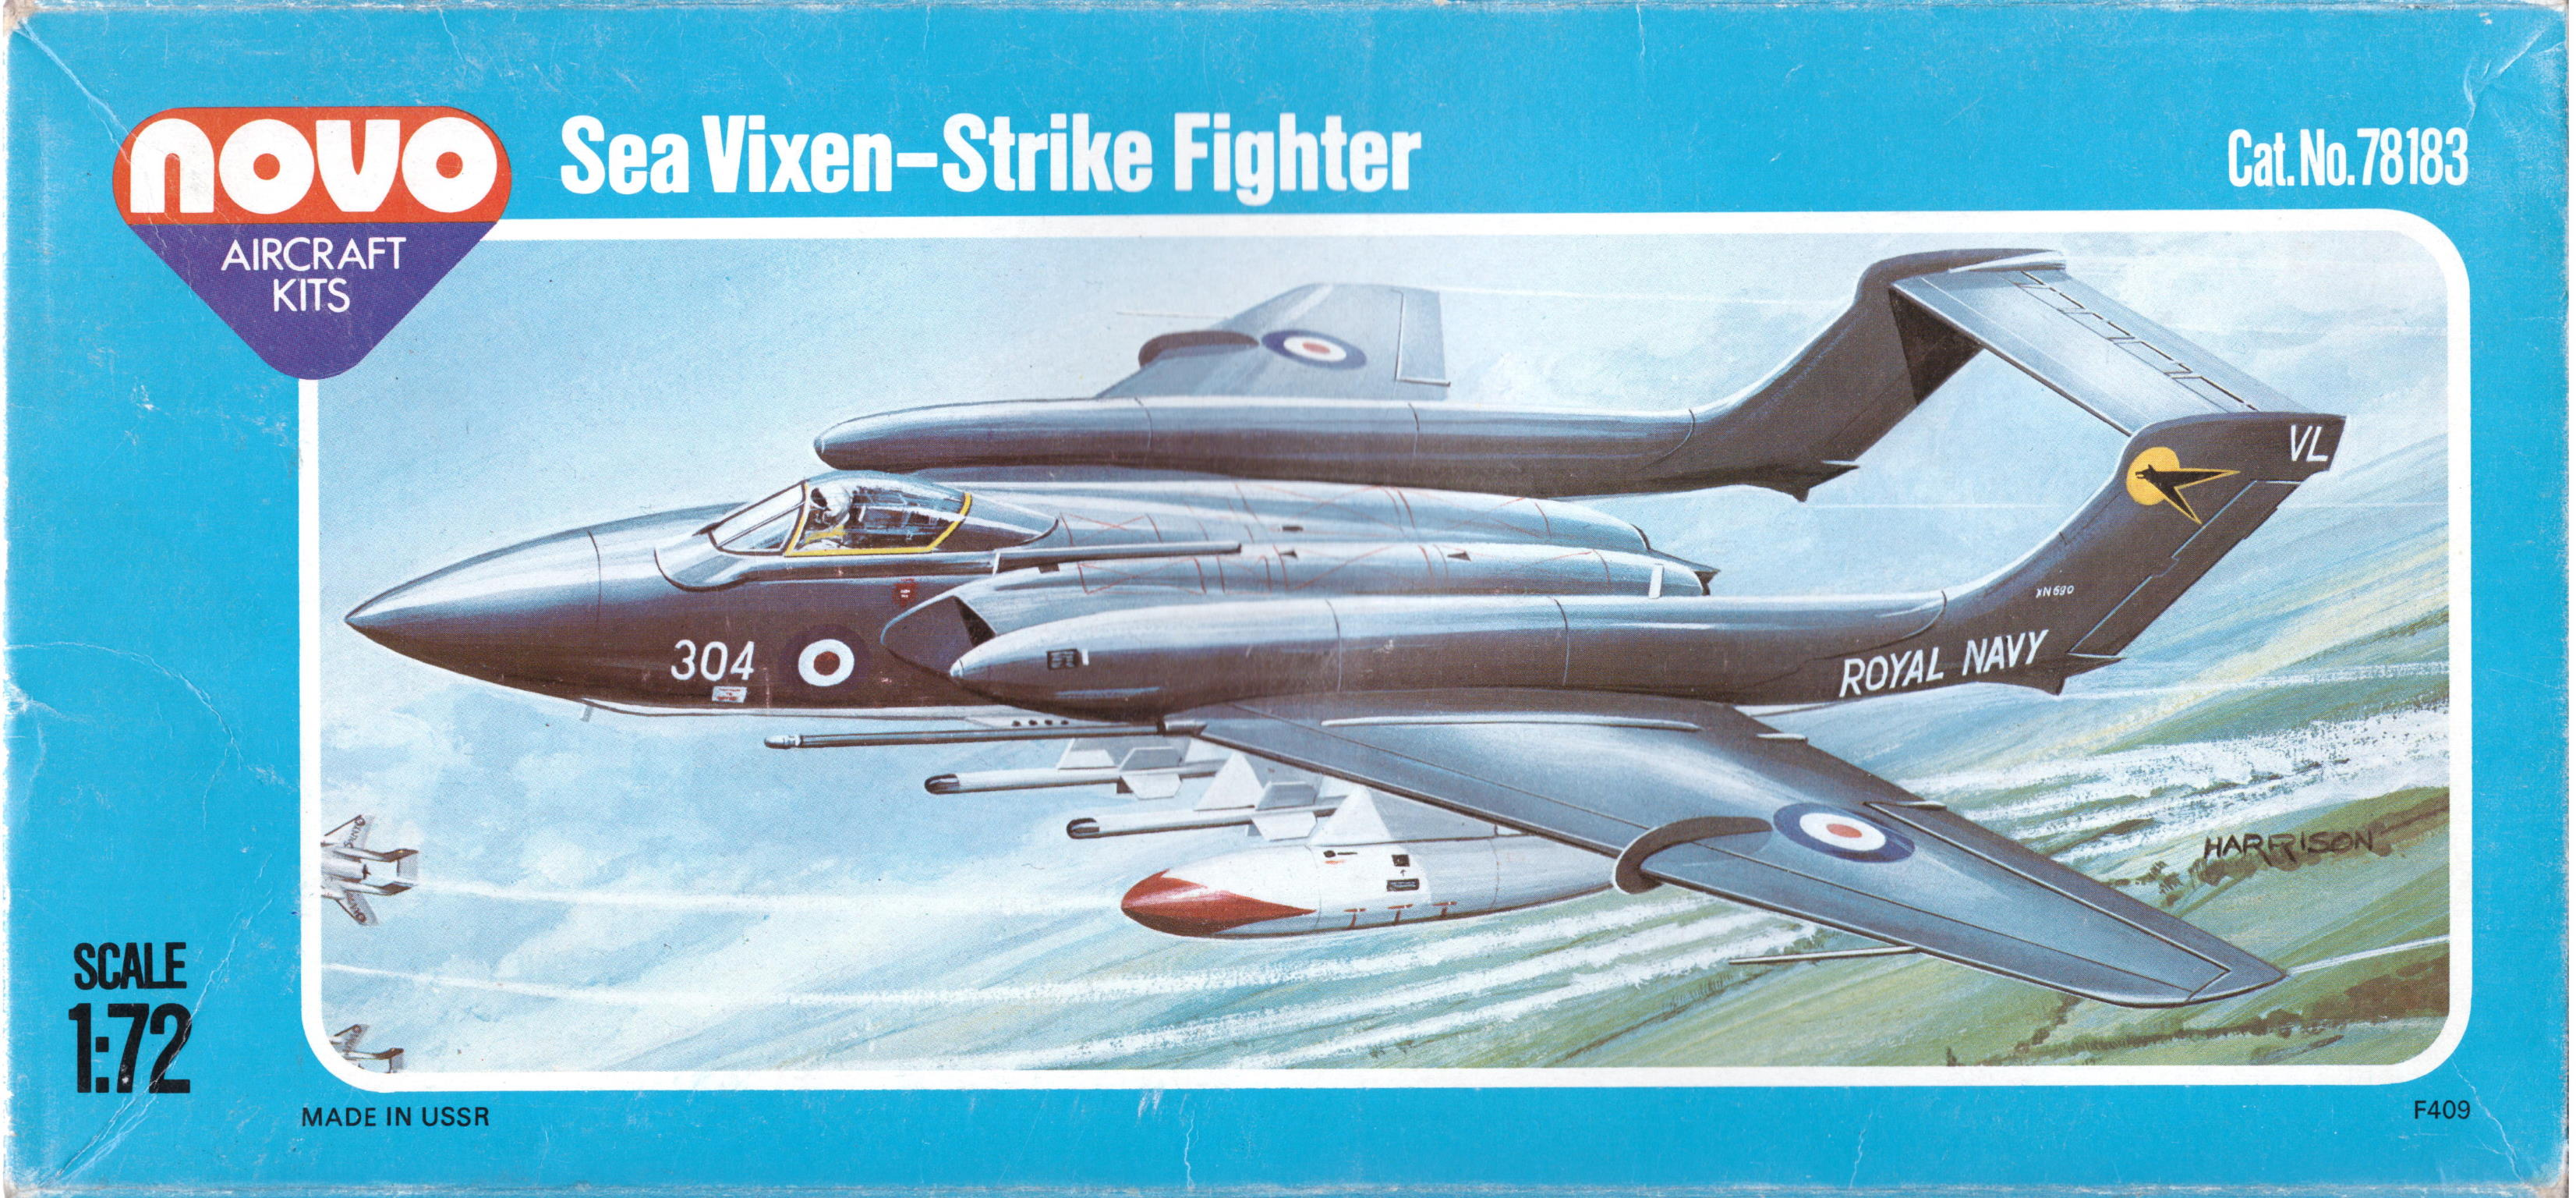 Коробка NOVO F409 Hawker Siddeley Sea Vixen FAW.Mk.2 Strike Fighter, NOVO Toys Ltd Cat.No.78054